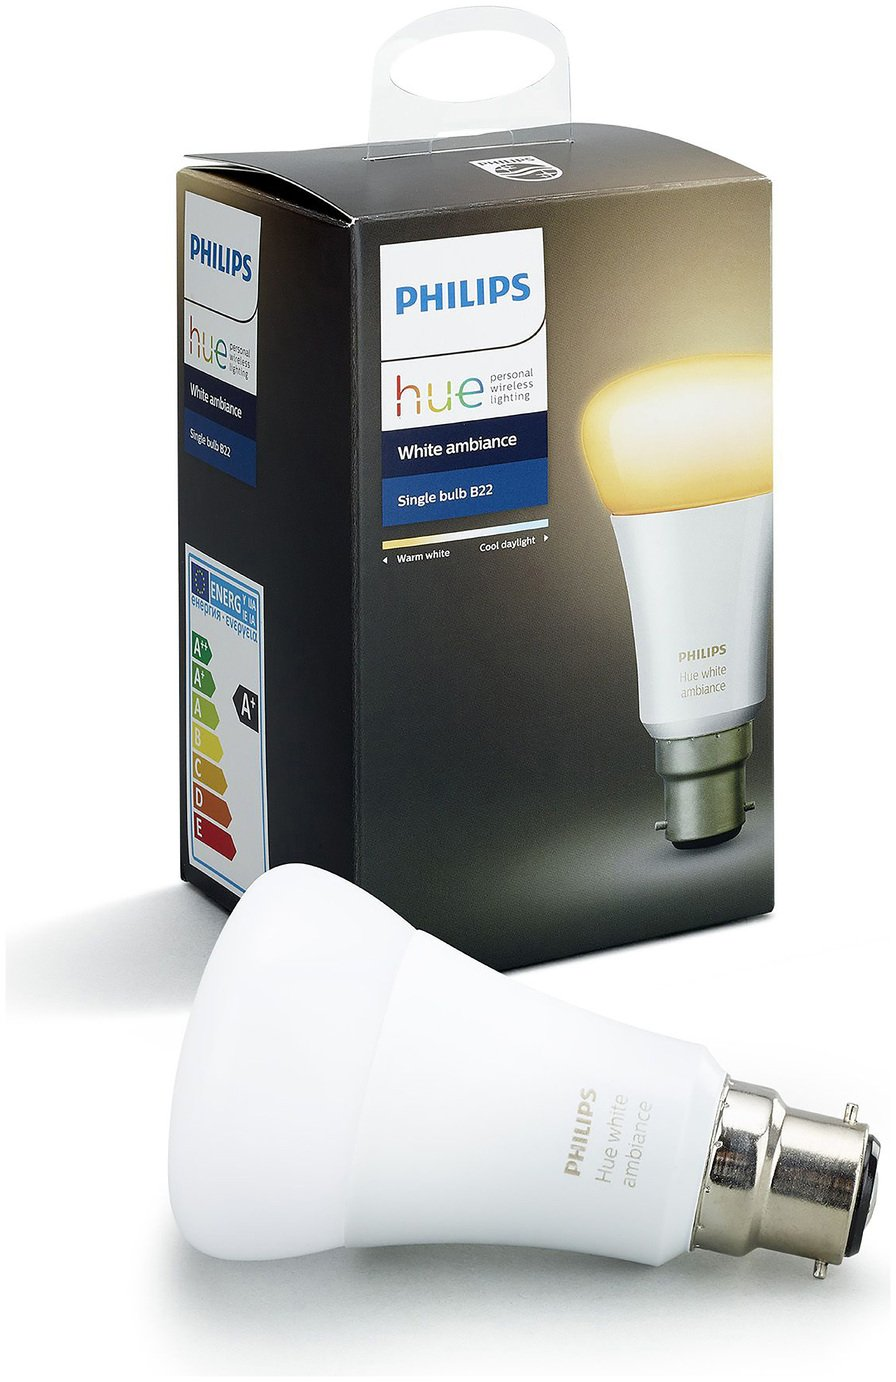 Philips - Hue White Ambiance 95W A60 B22 from Philips hue